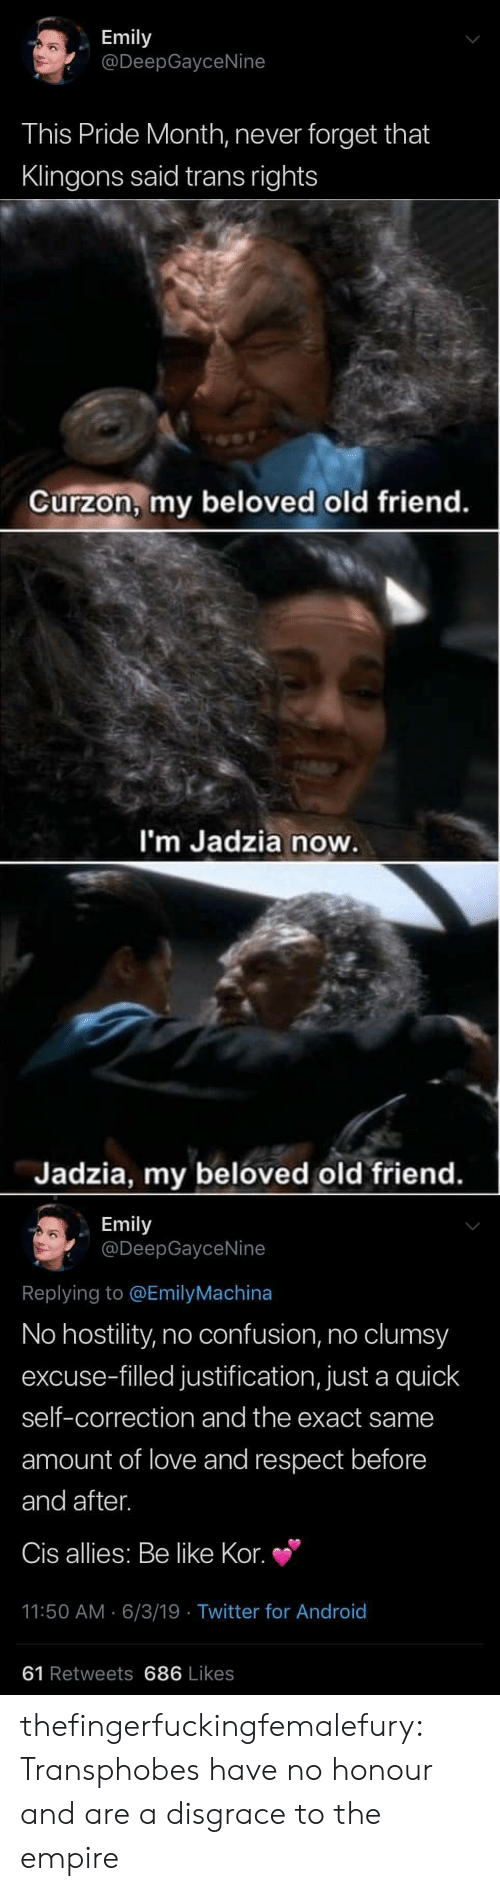 beloved: Emily  @DeepGayceNine  This Pride Month, never forget that  Klingons said trans rights   Curzon, my beloved old friend.  I'm Jadzia now.  Jadzia, my beloved old friend.   Emily  @DeepGayceNine  Replying to @EmilyMachina  No hostility, no confusion, no clumsy  excuse-filled justification, just a quick  self-correction and the exact same  amount of love and respect before  and after.  Cis allies: Be like Kor.  11:50 AM 6/3/19 Twitter for And roid  61 Retweets 686 Likes thefingerfuckingfemalefury: Transphobes have no honour and are a disgrace to the empire